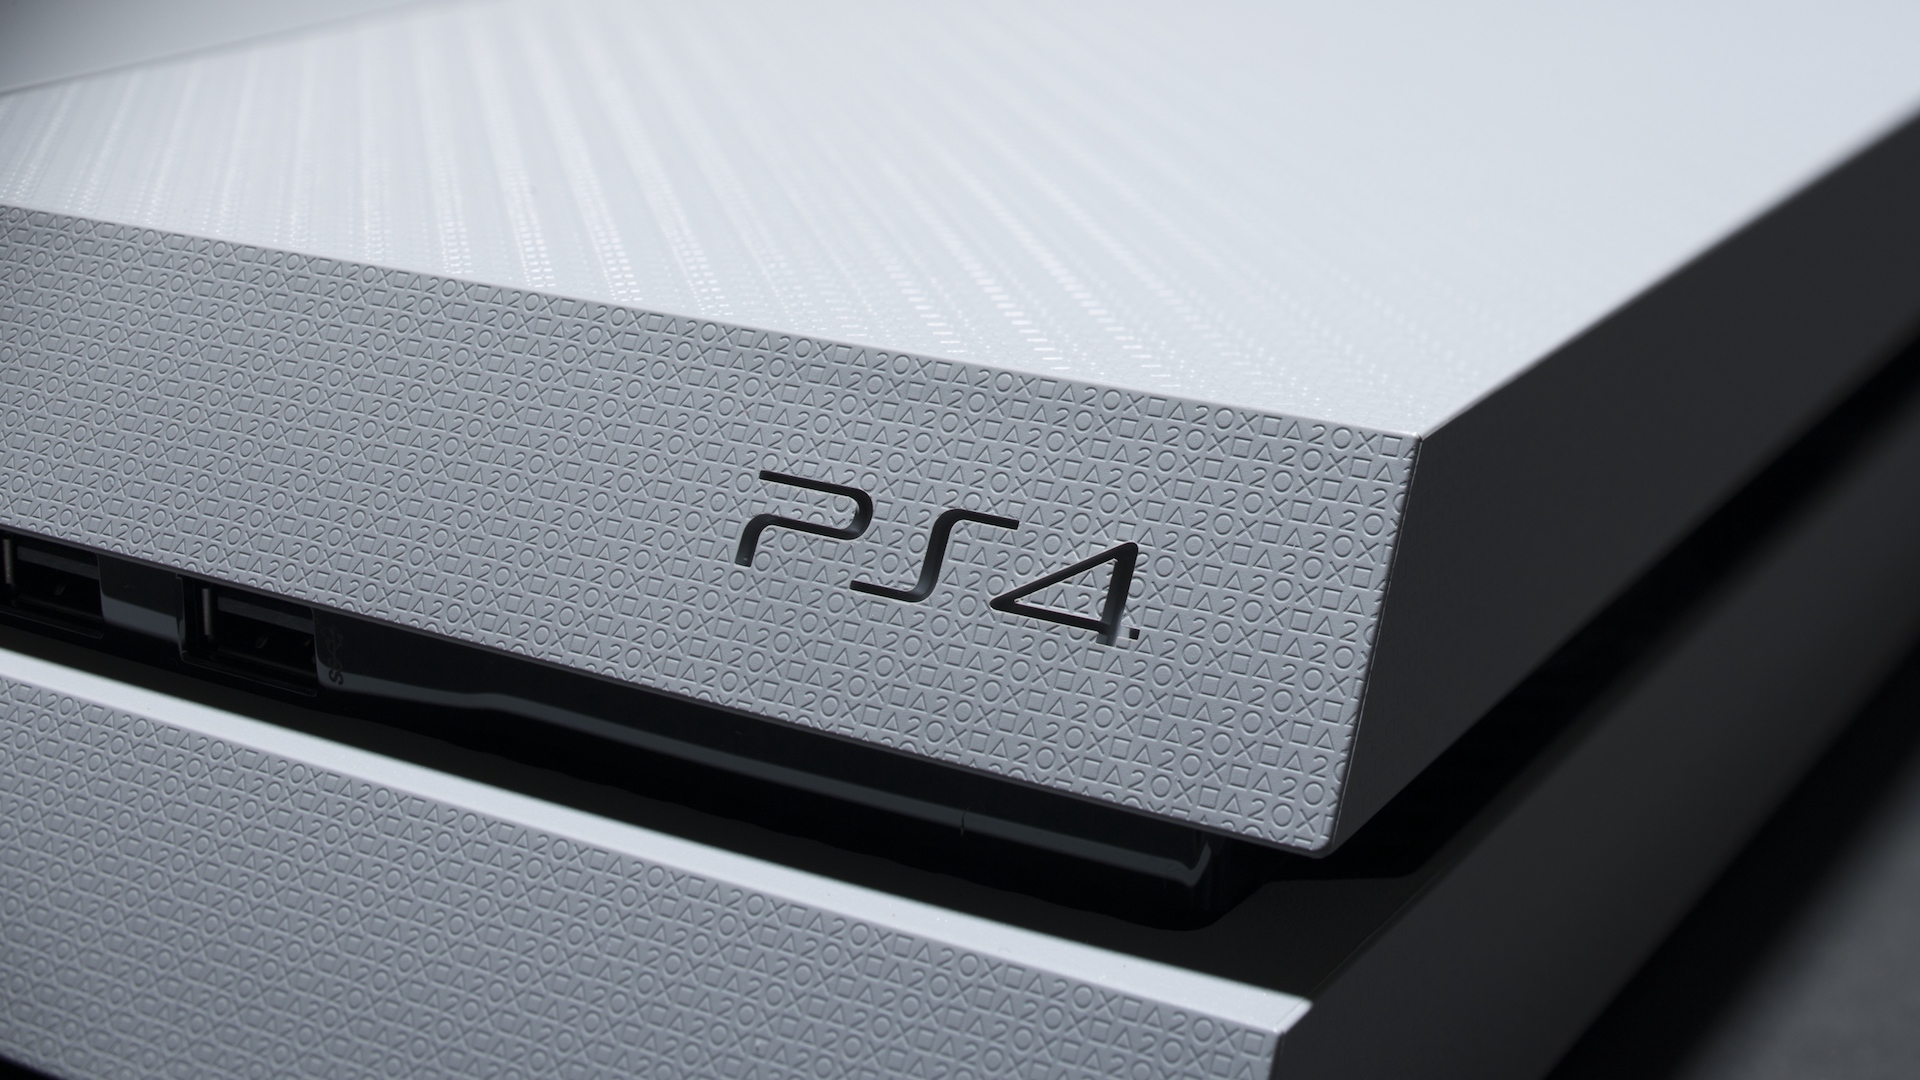 http://www.numerama.com/content/uploads/2016/03/ps4_game_console_sony_playstation_4_99973_2560x1440.jpg